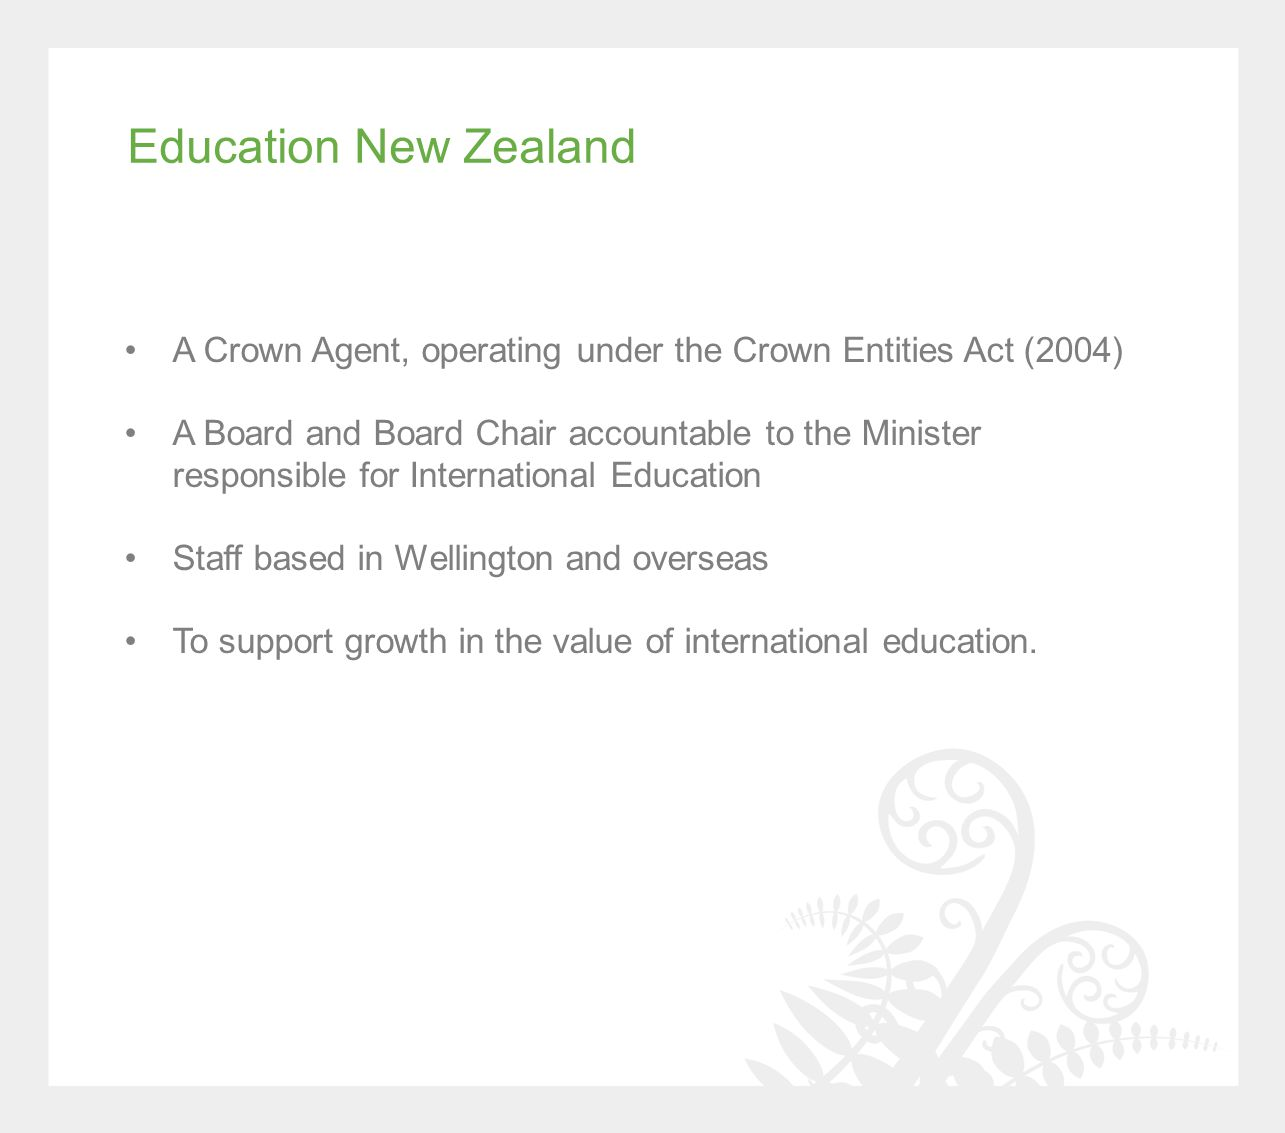 Education New Zealand A Crown Agent, operating under the Crown Entities Act (2004) A Board and Board Chair accountable to the Minister responsible for International Education Staff based in Wellington and overseas To support growth in the value of international education.